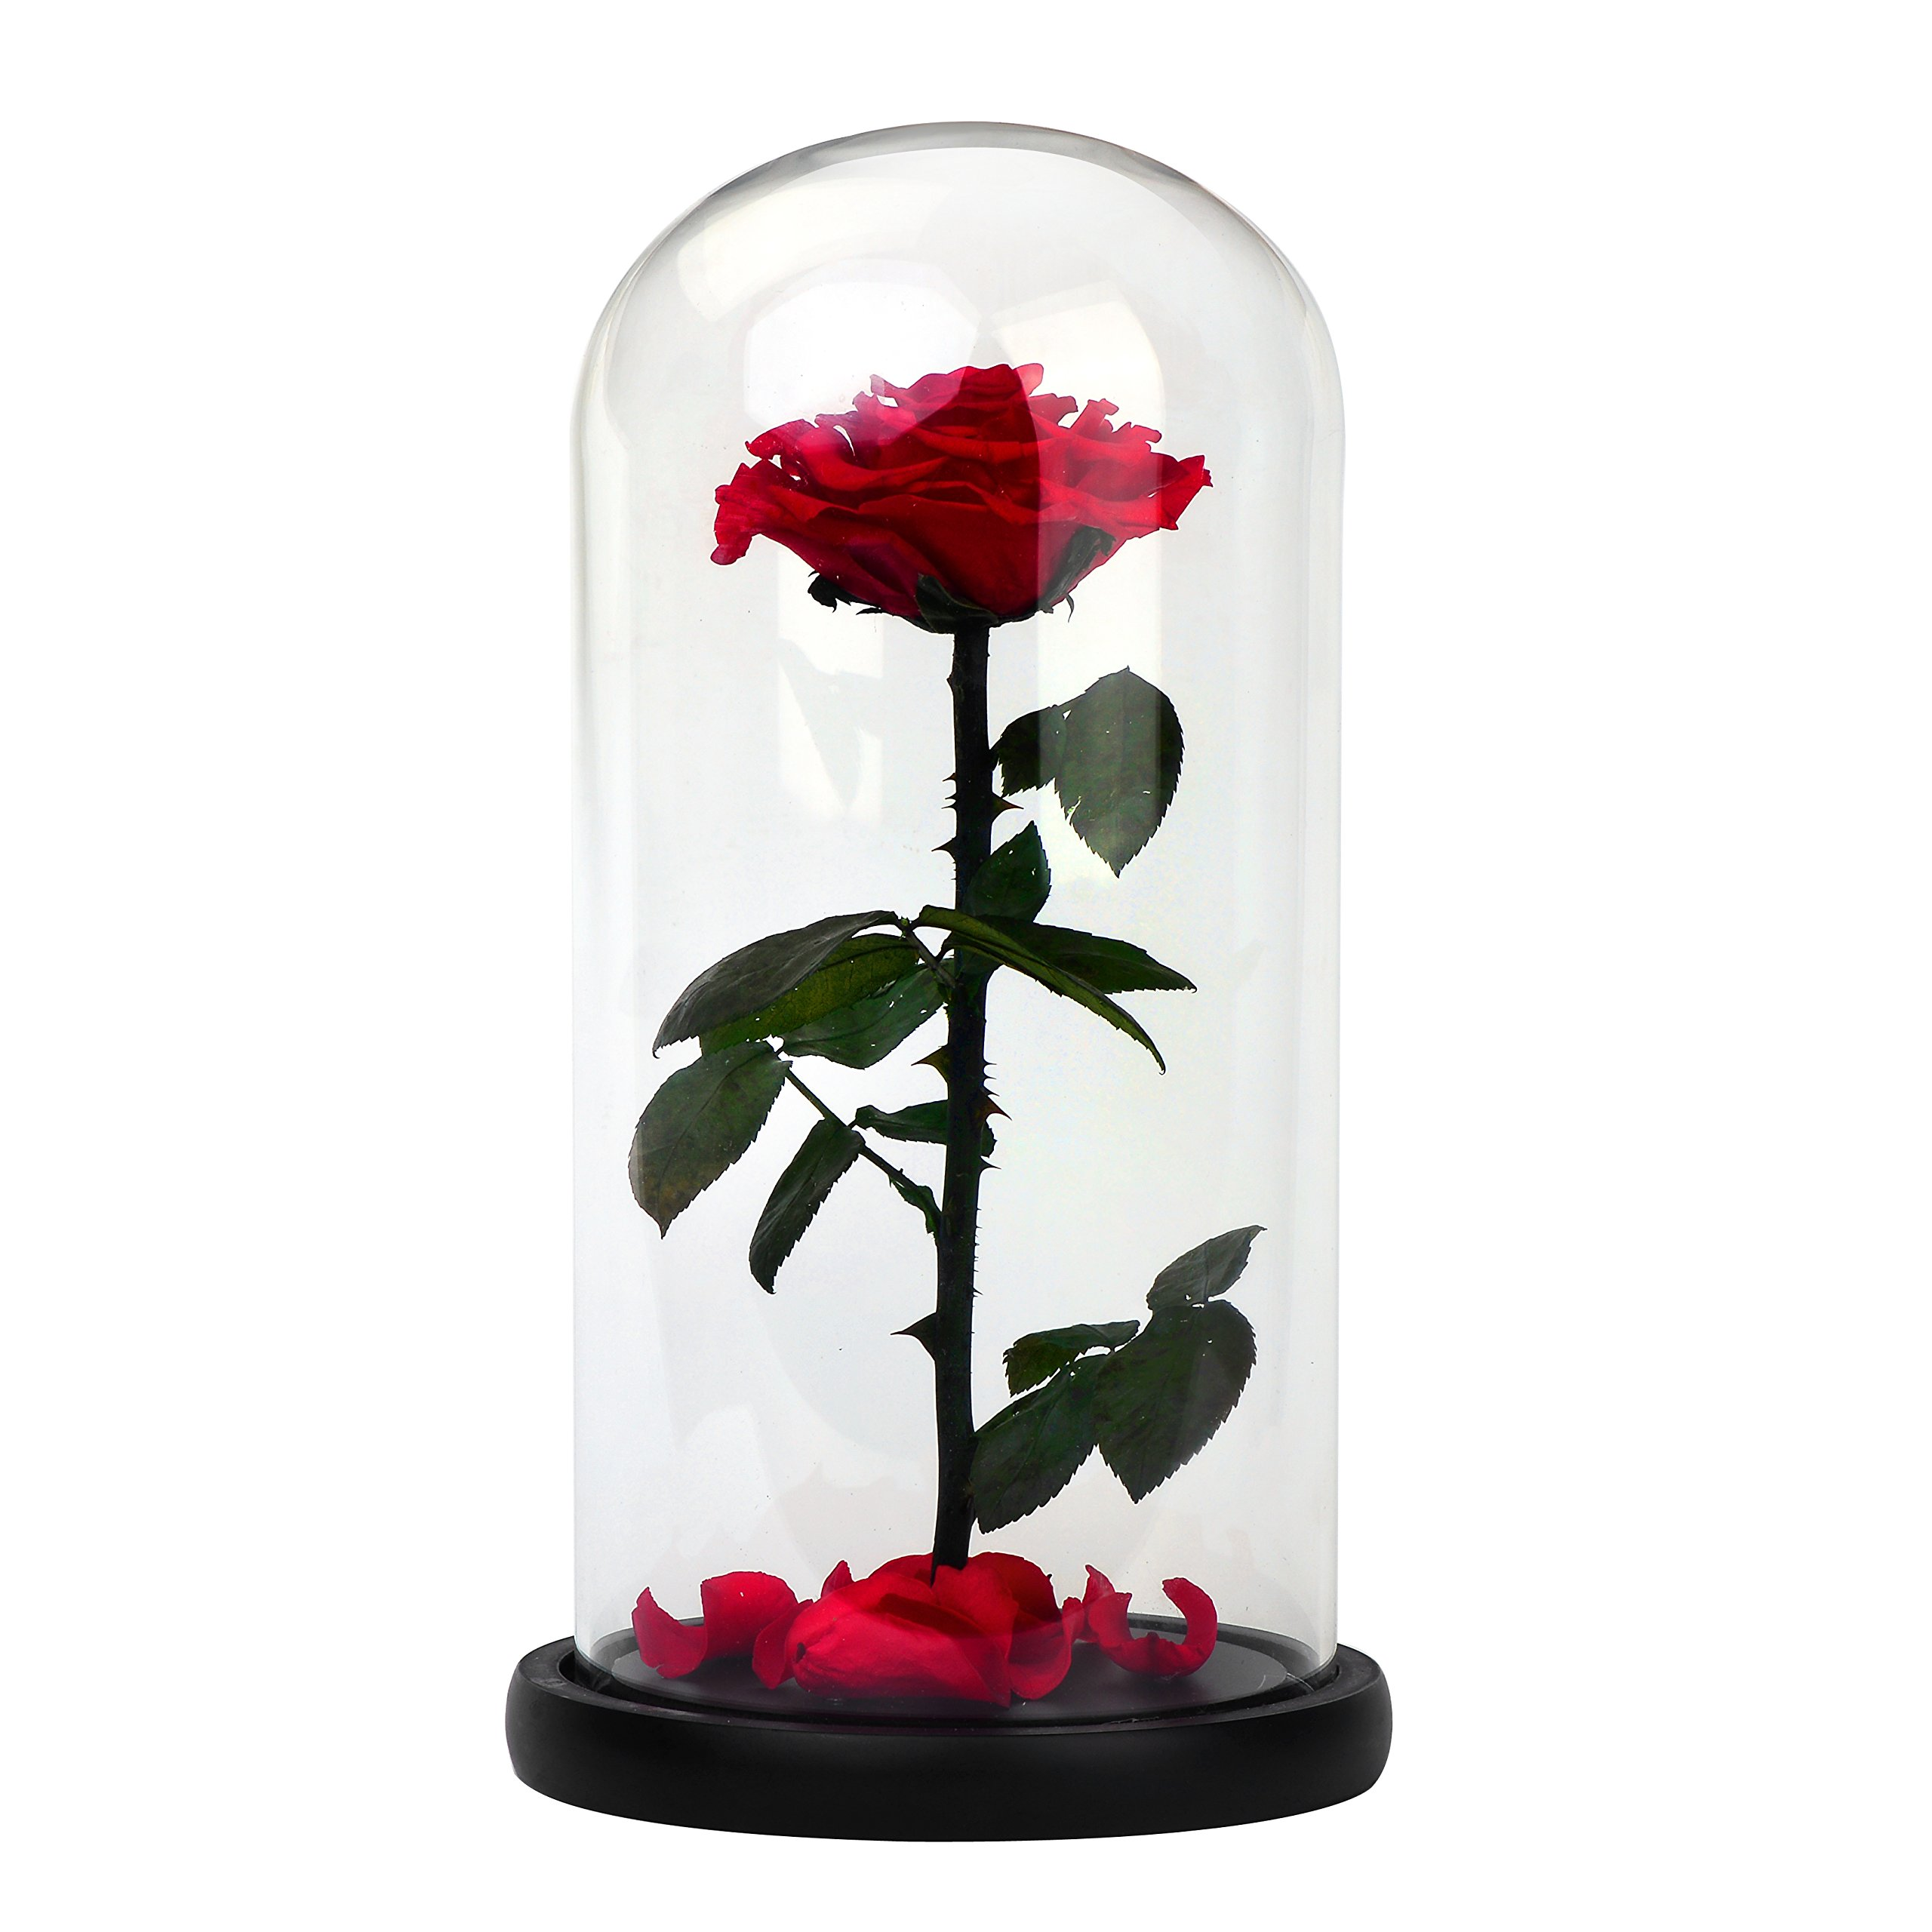 DeFancy Preserved Real Rose with Fallen Petals in Glass Cloche Dome with Black Wood Base-Best Gift Jar (Red)